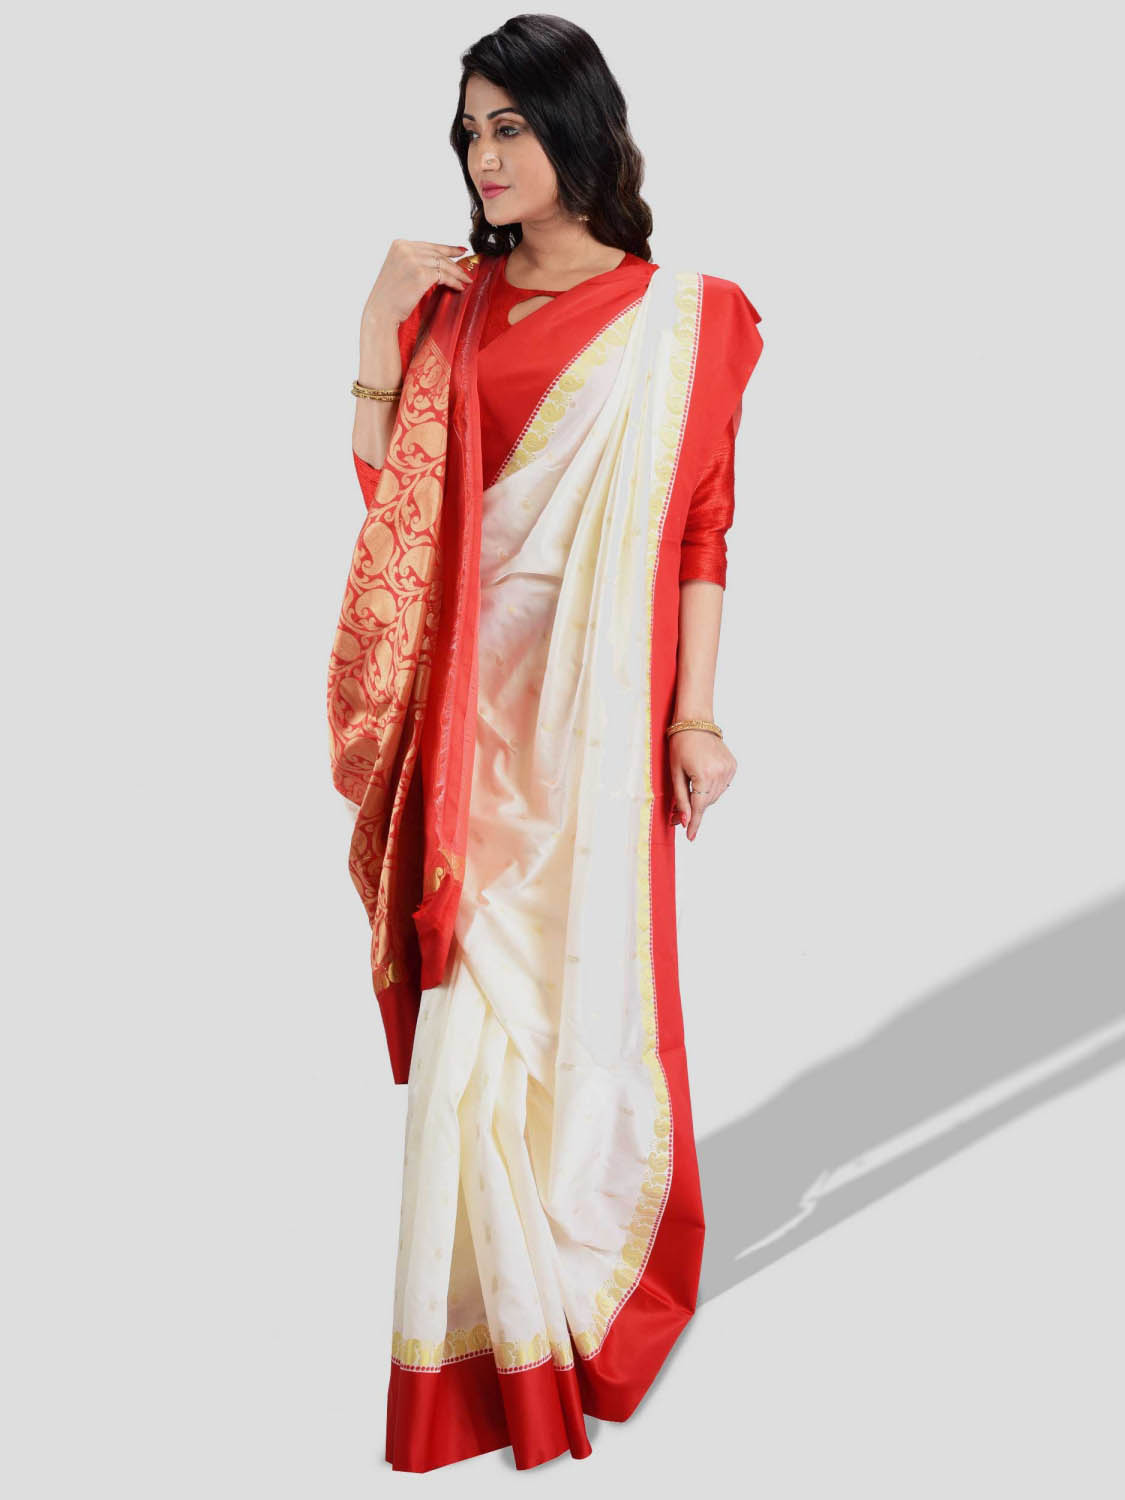 Bengali Garad Saree Pure Silk Garad Saree With Blouse Pcs. Handmade Exclusive Temple Flower with Kalka with Whole Body Design (White and Red)